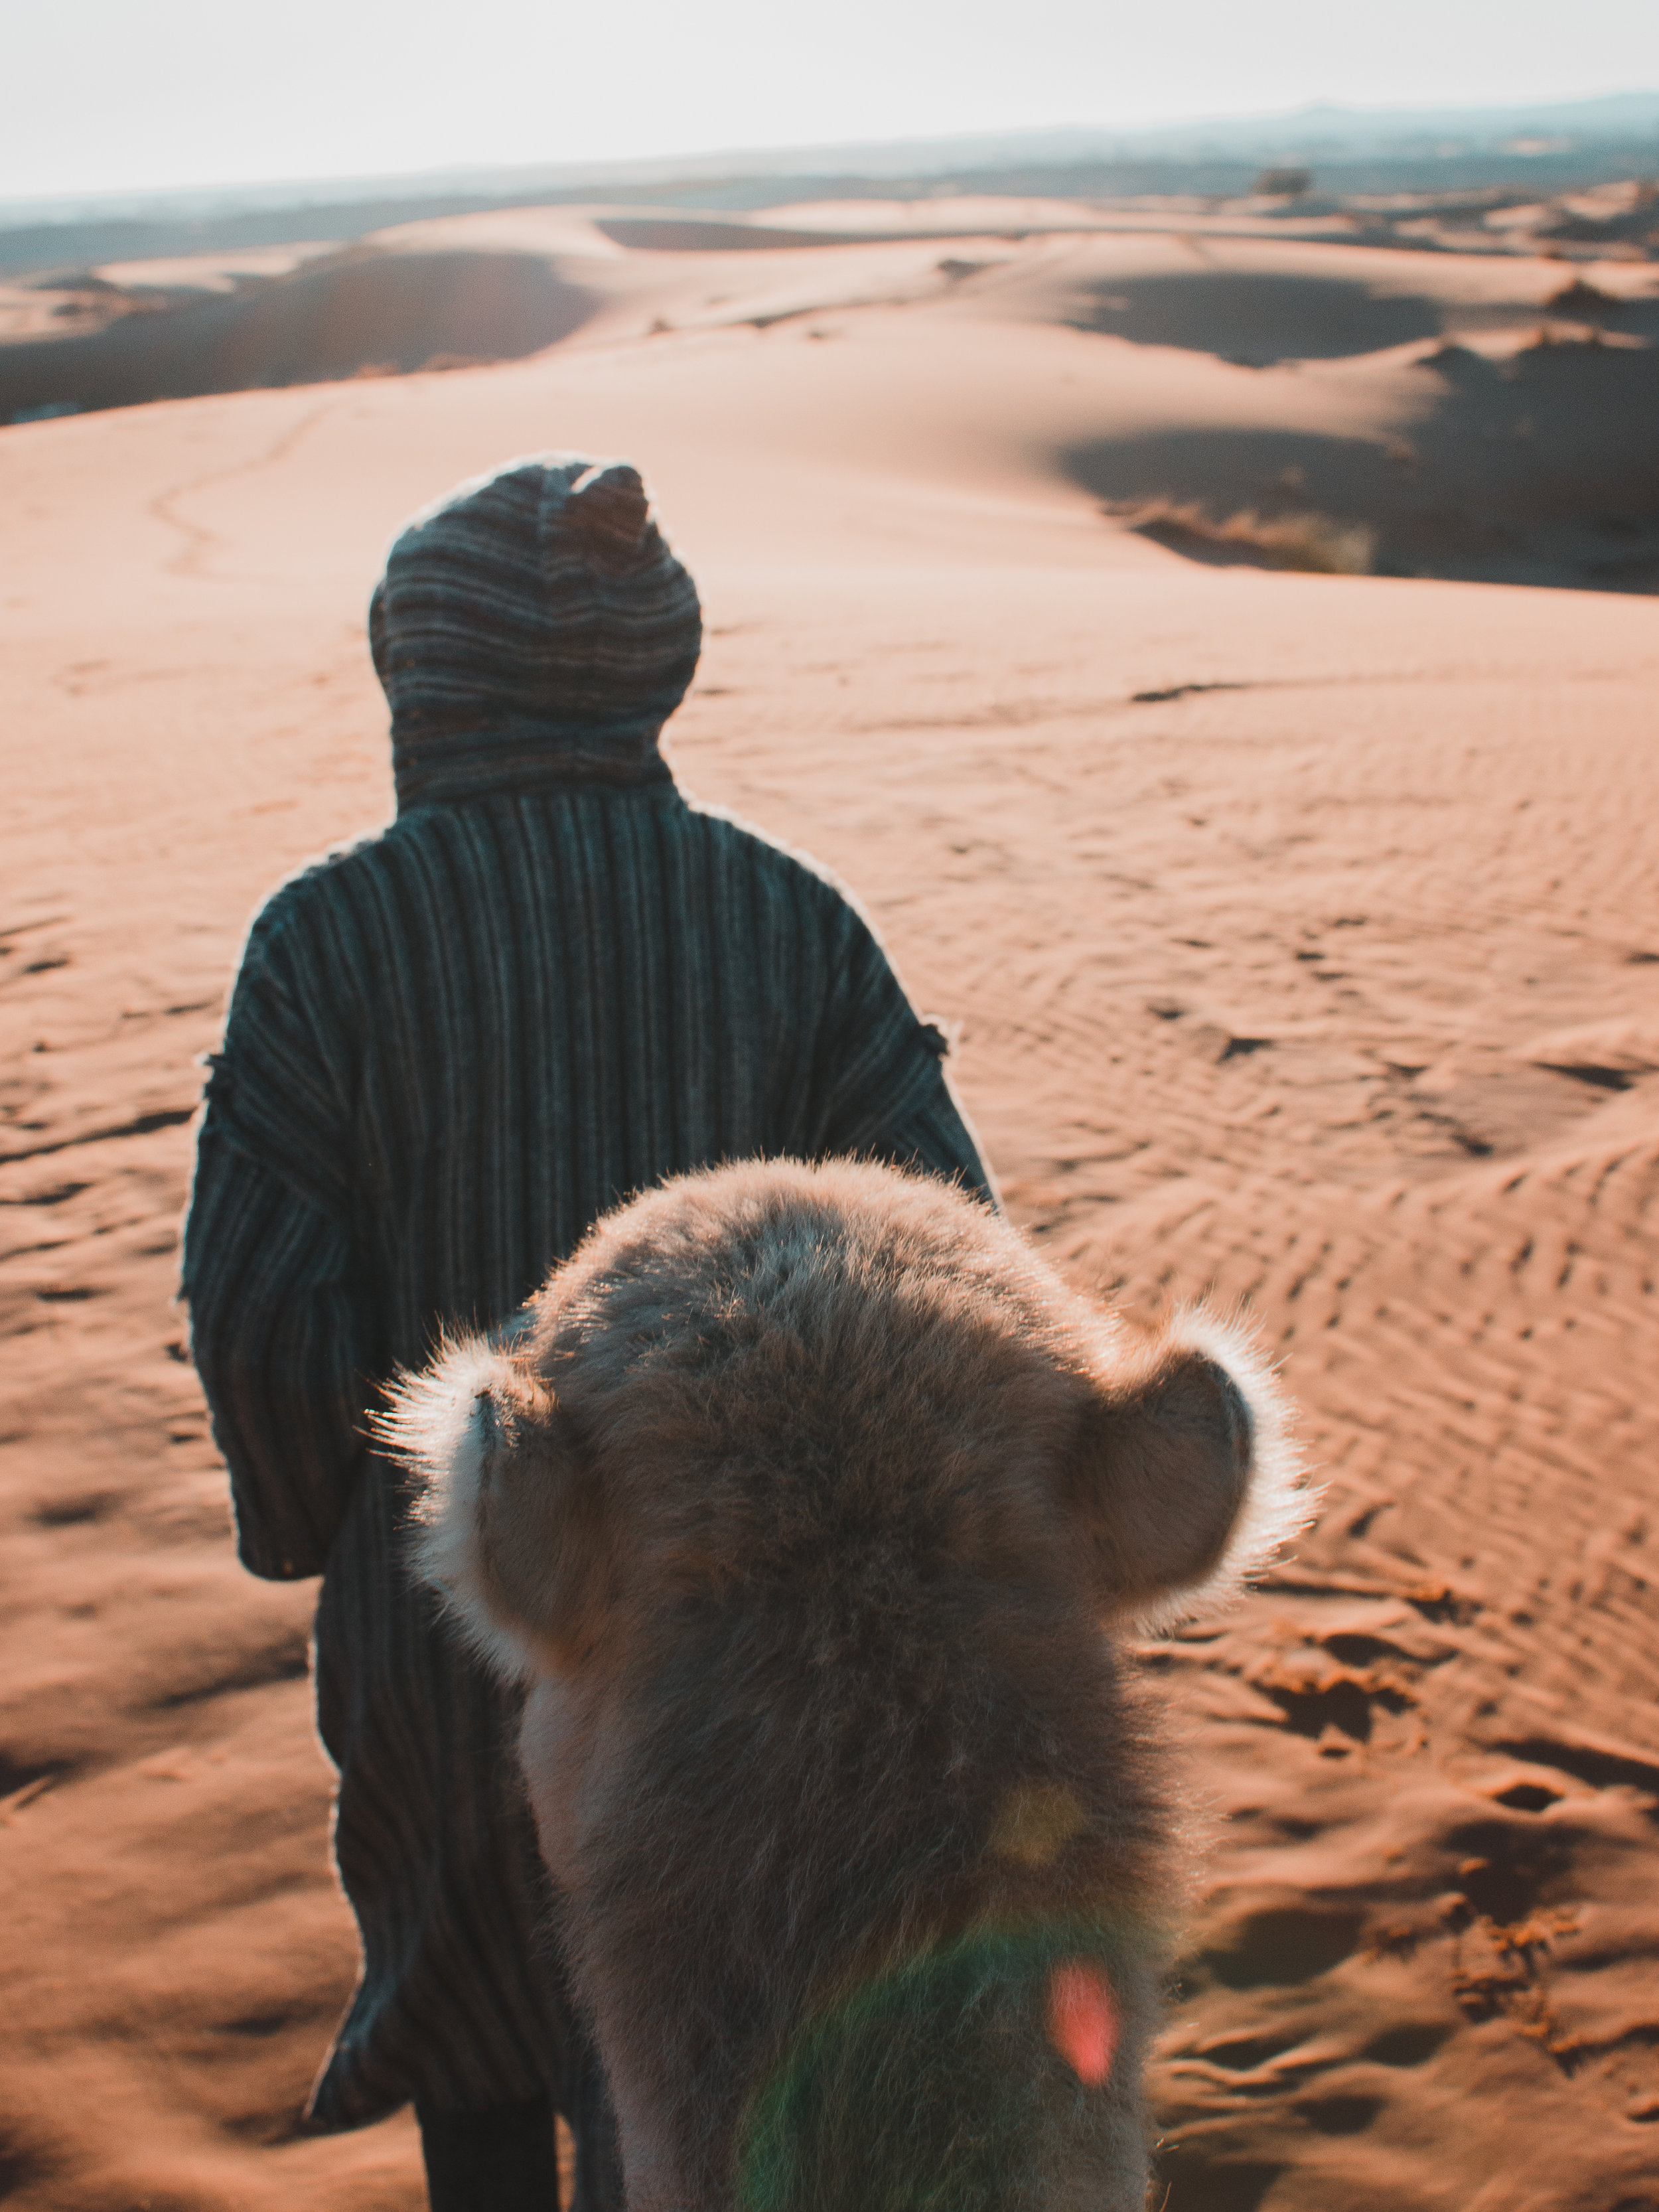 Riding a camel to see the sunrise in the Sahara Desert, Morocco